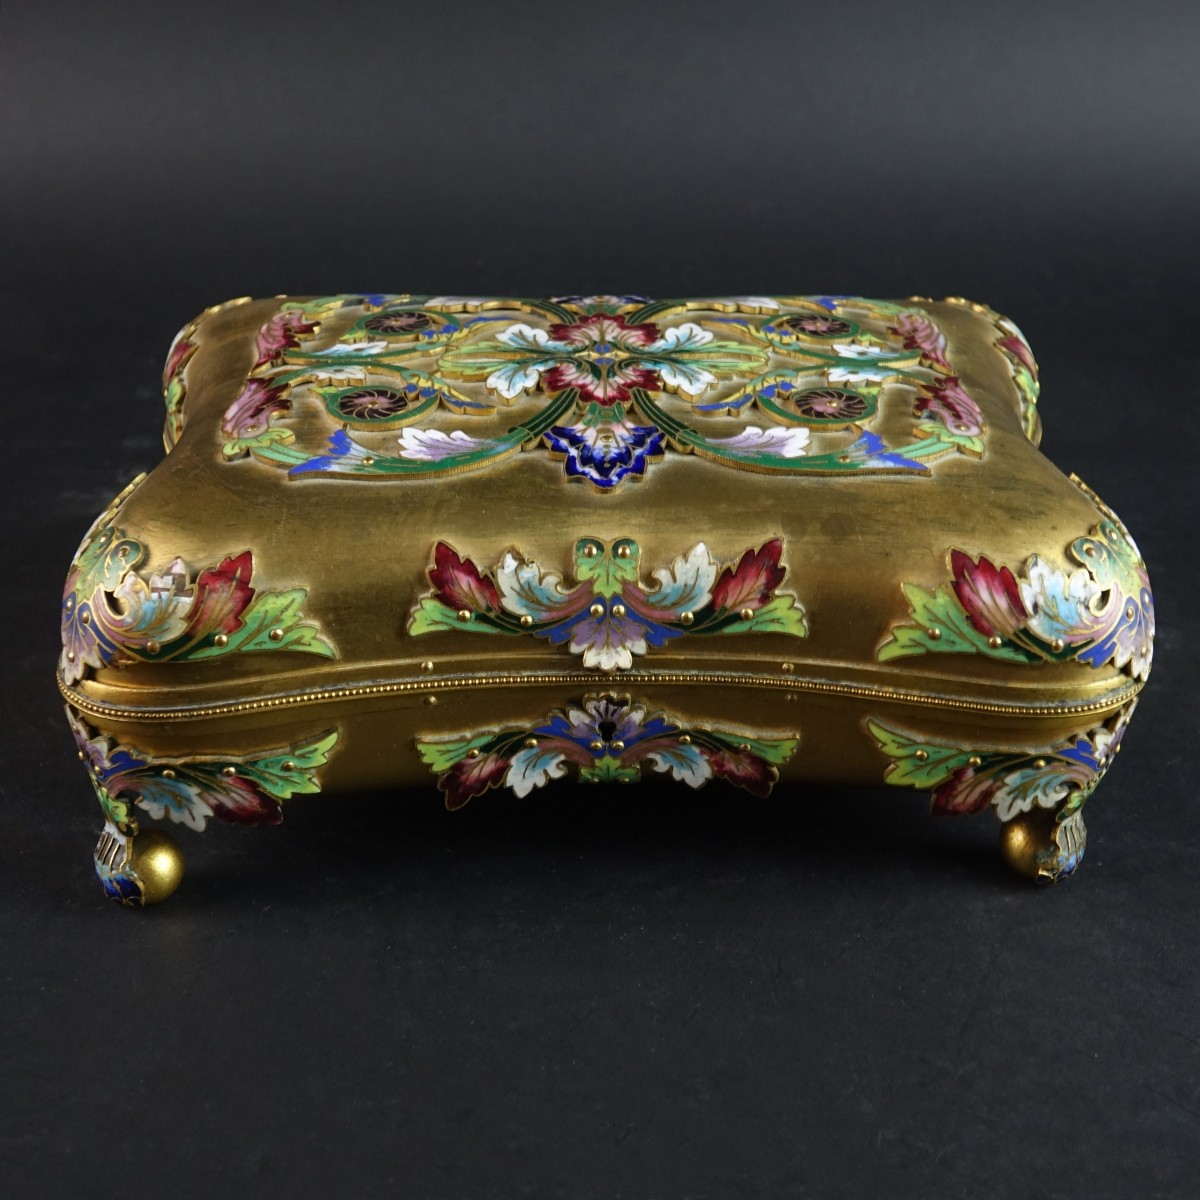 Antique French Gilt Bronze and Champleve Box